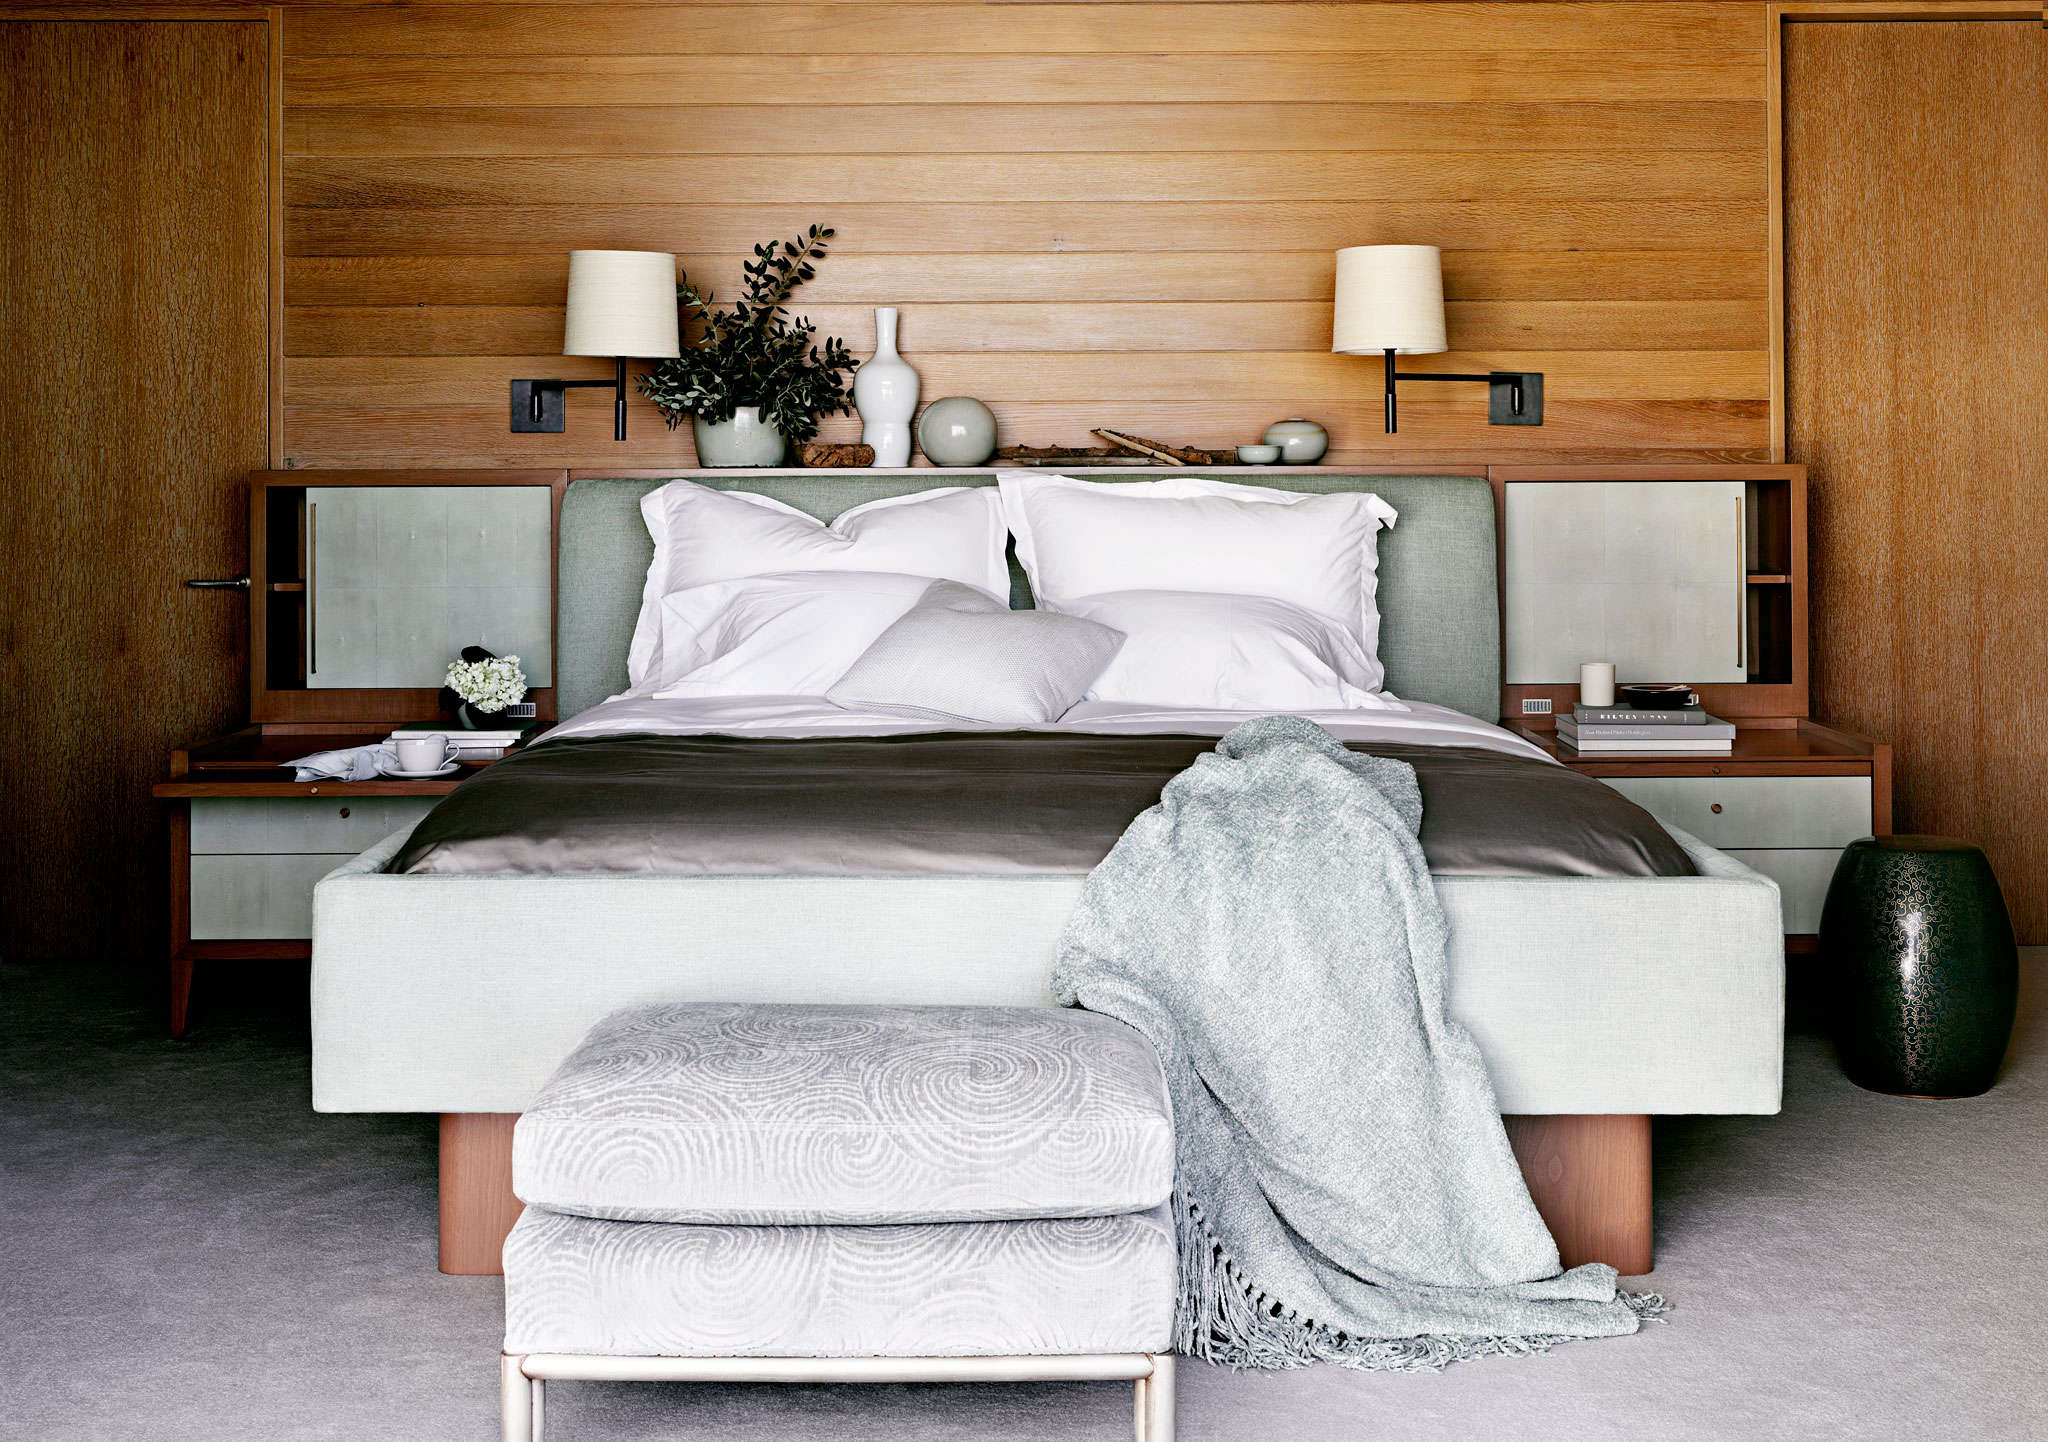 Above: A Textural Malibu Bedroom From Barryu0027s Portfolio.